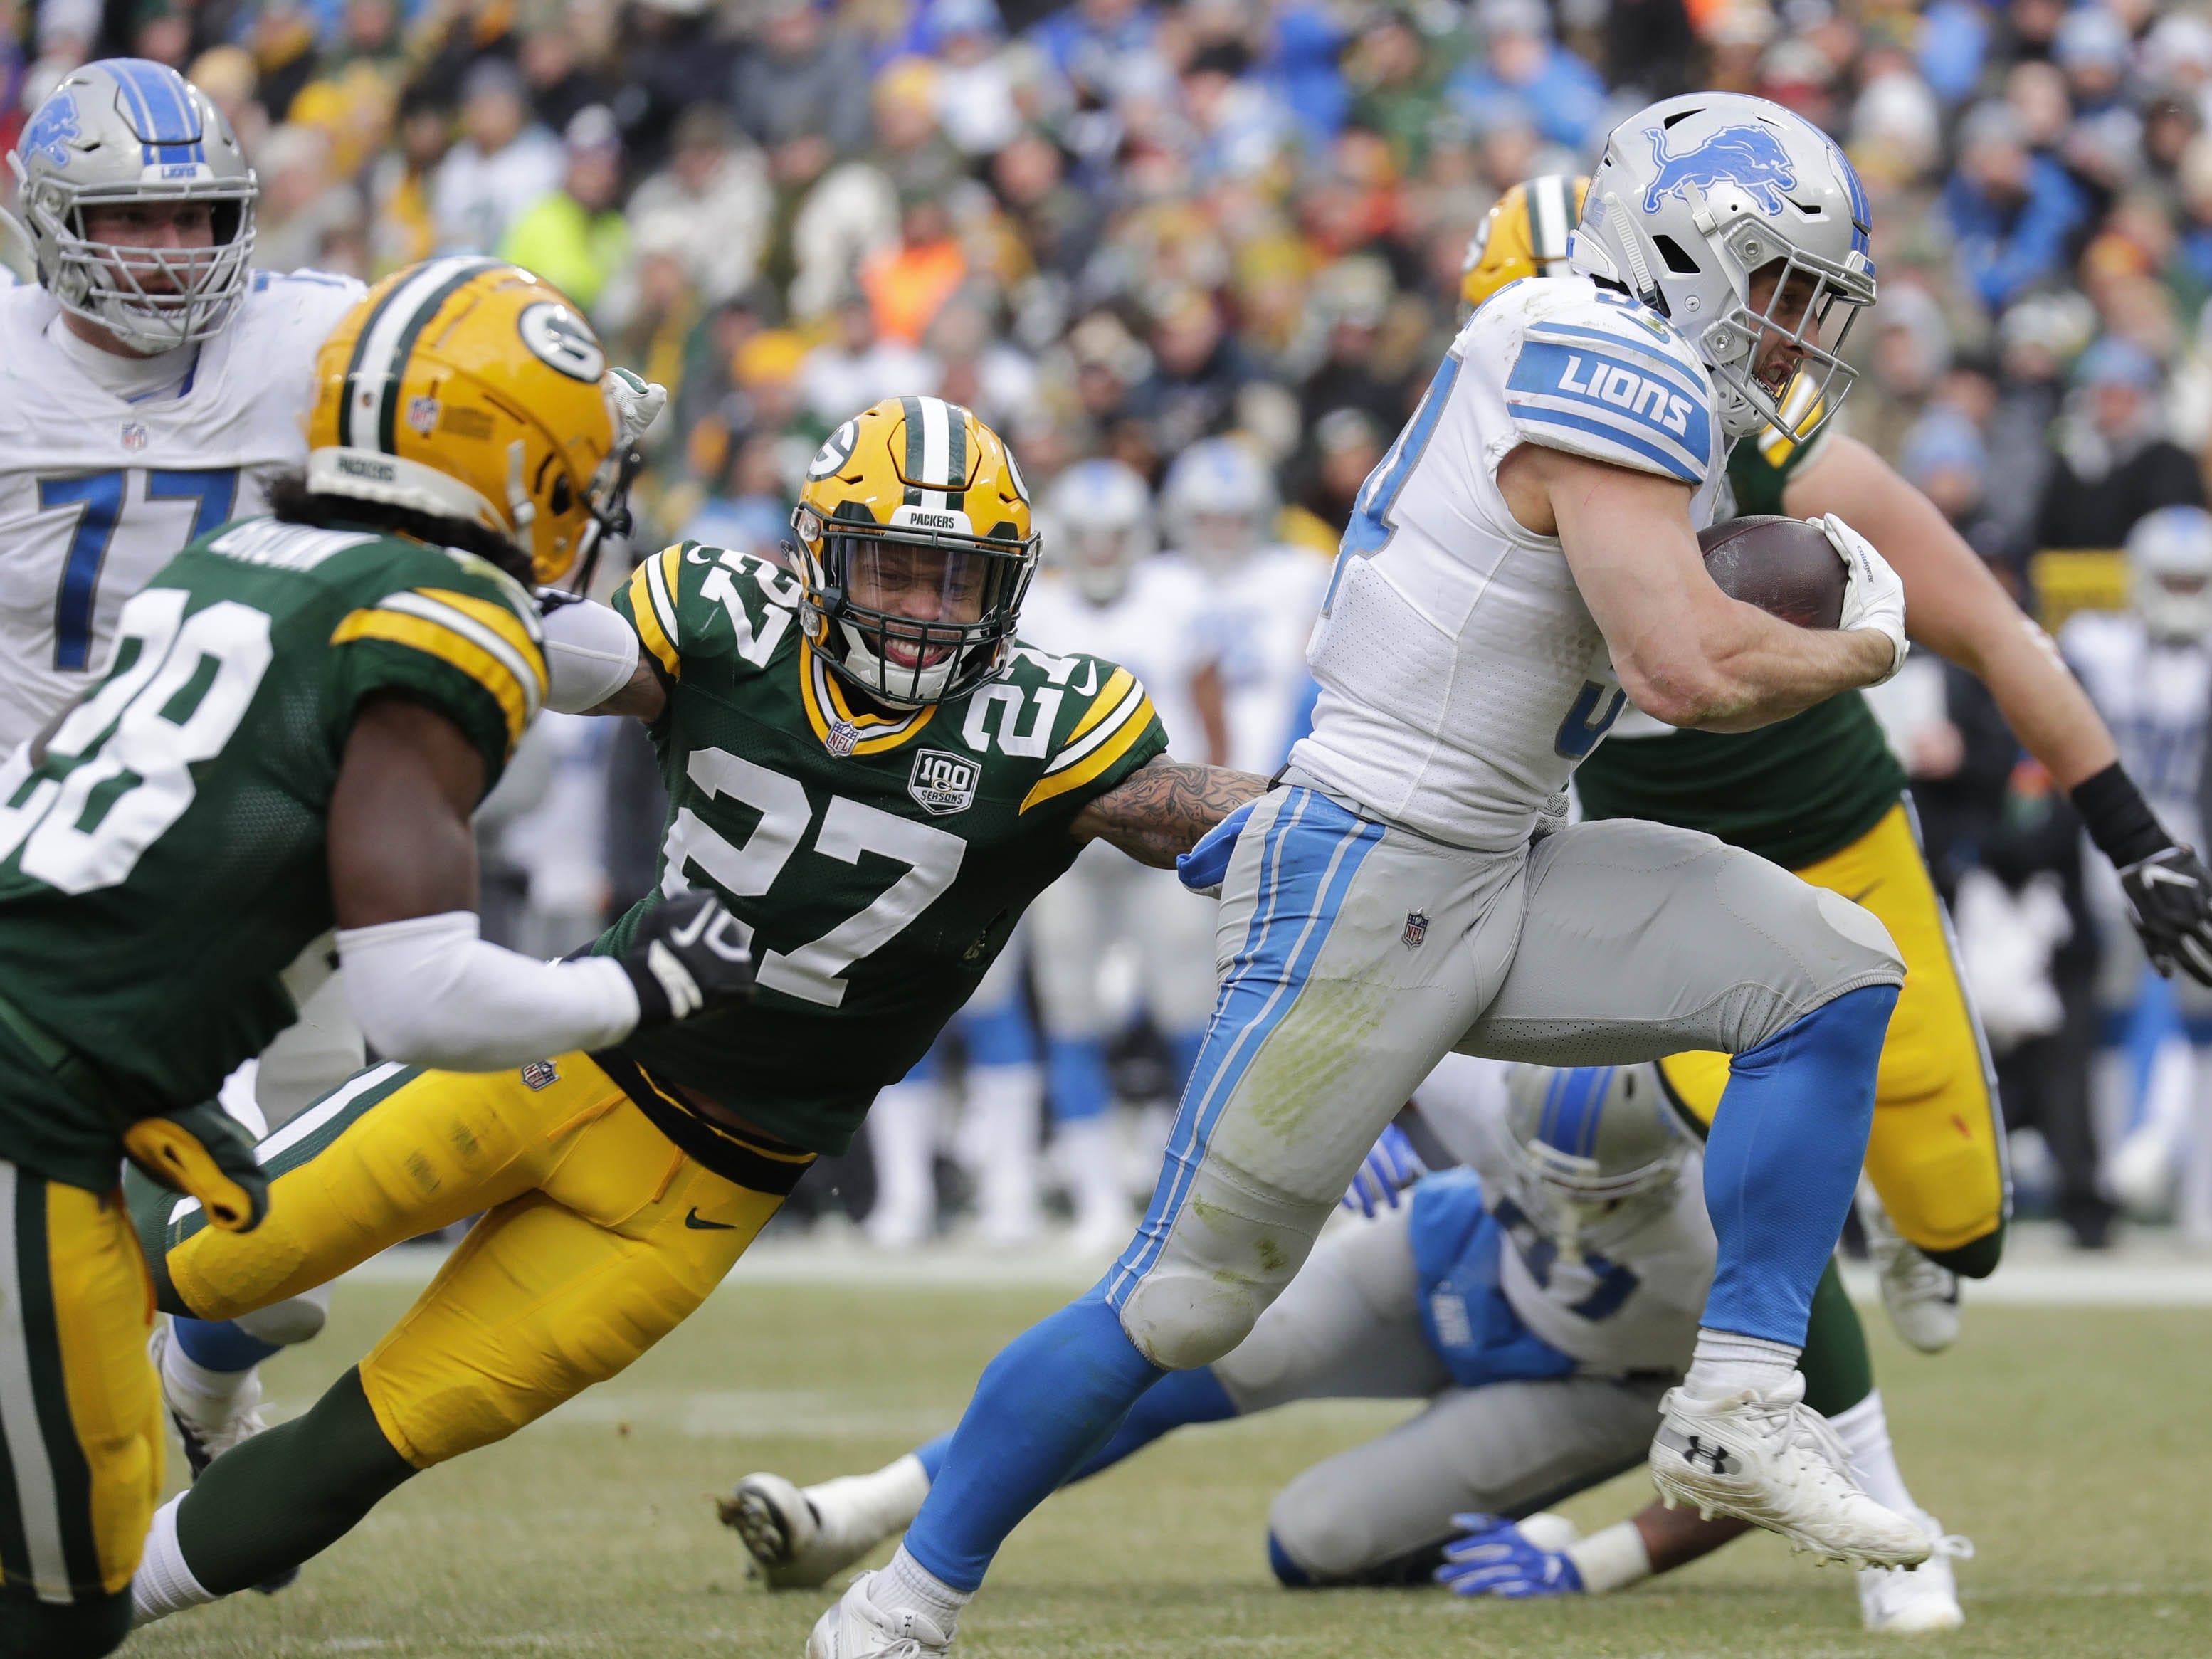 Detroit Lions running back Zach Zenner (34) breaks away for a touchdown run against defensive back Tony Brown (28) and defensive back Josh Jones (27) late in the second quarter Sunday, December 30, 2018, at Lambeau Field in Green Bay, Wis.  Dan Powers/USA TODAY NETWORK-Wisconsin